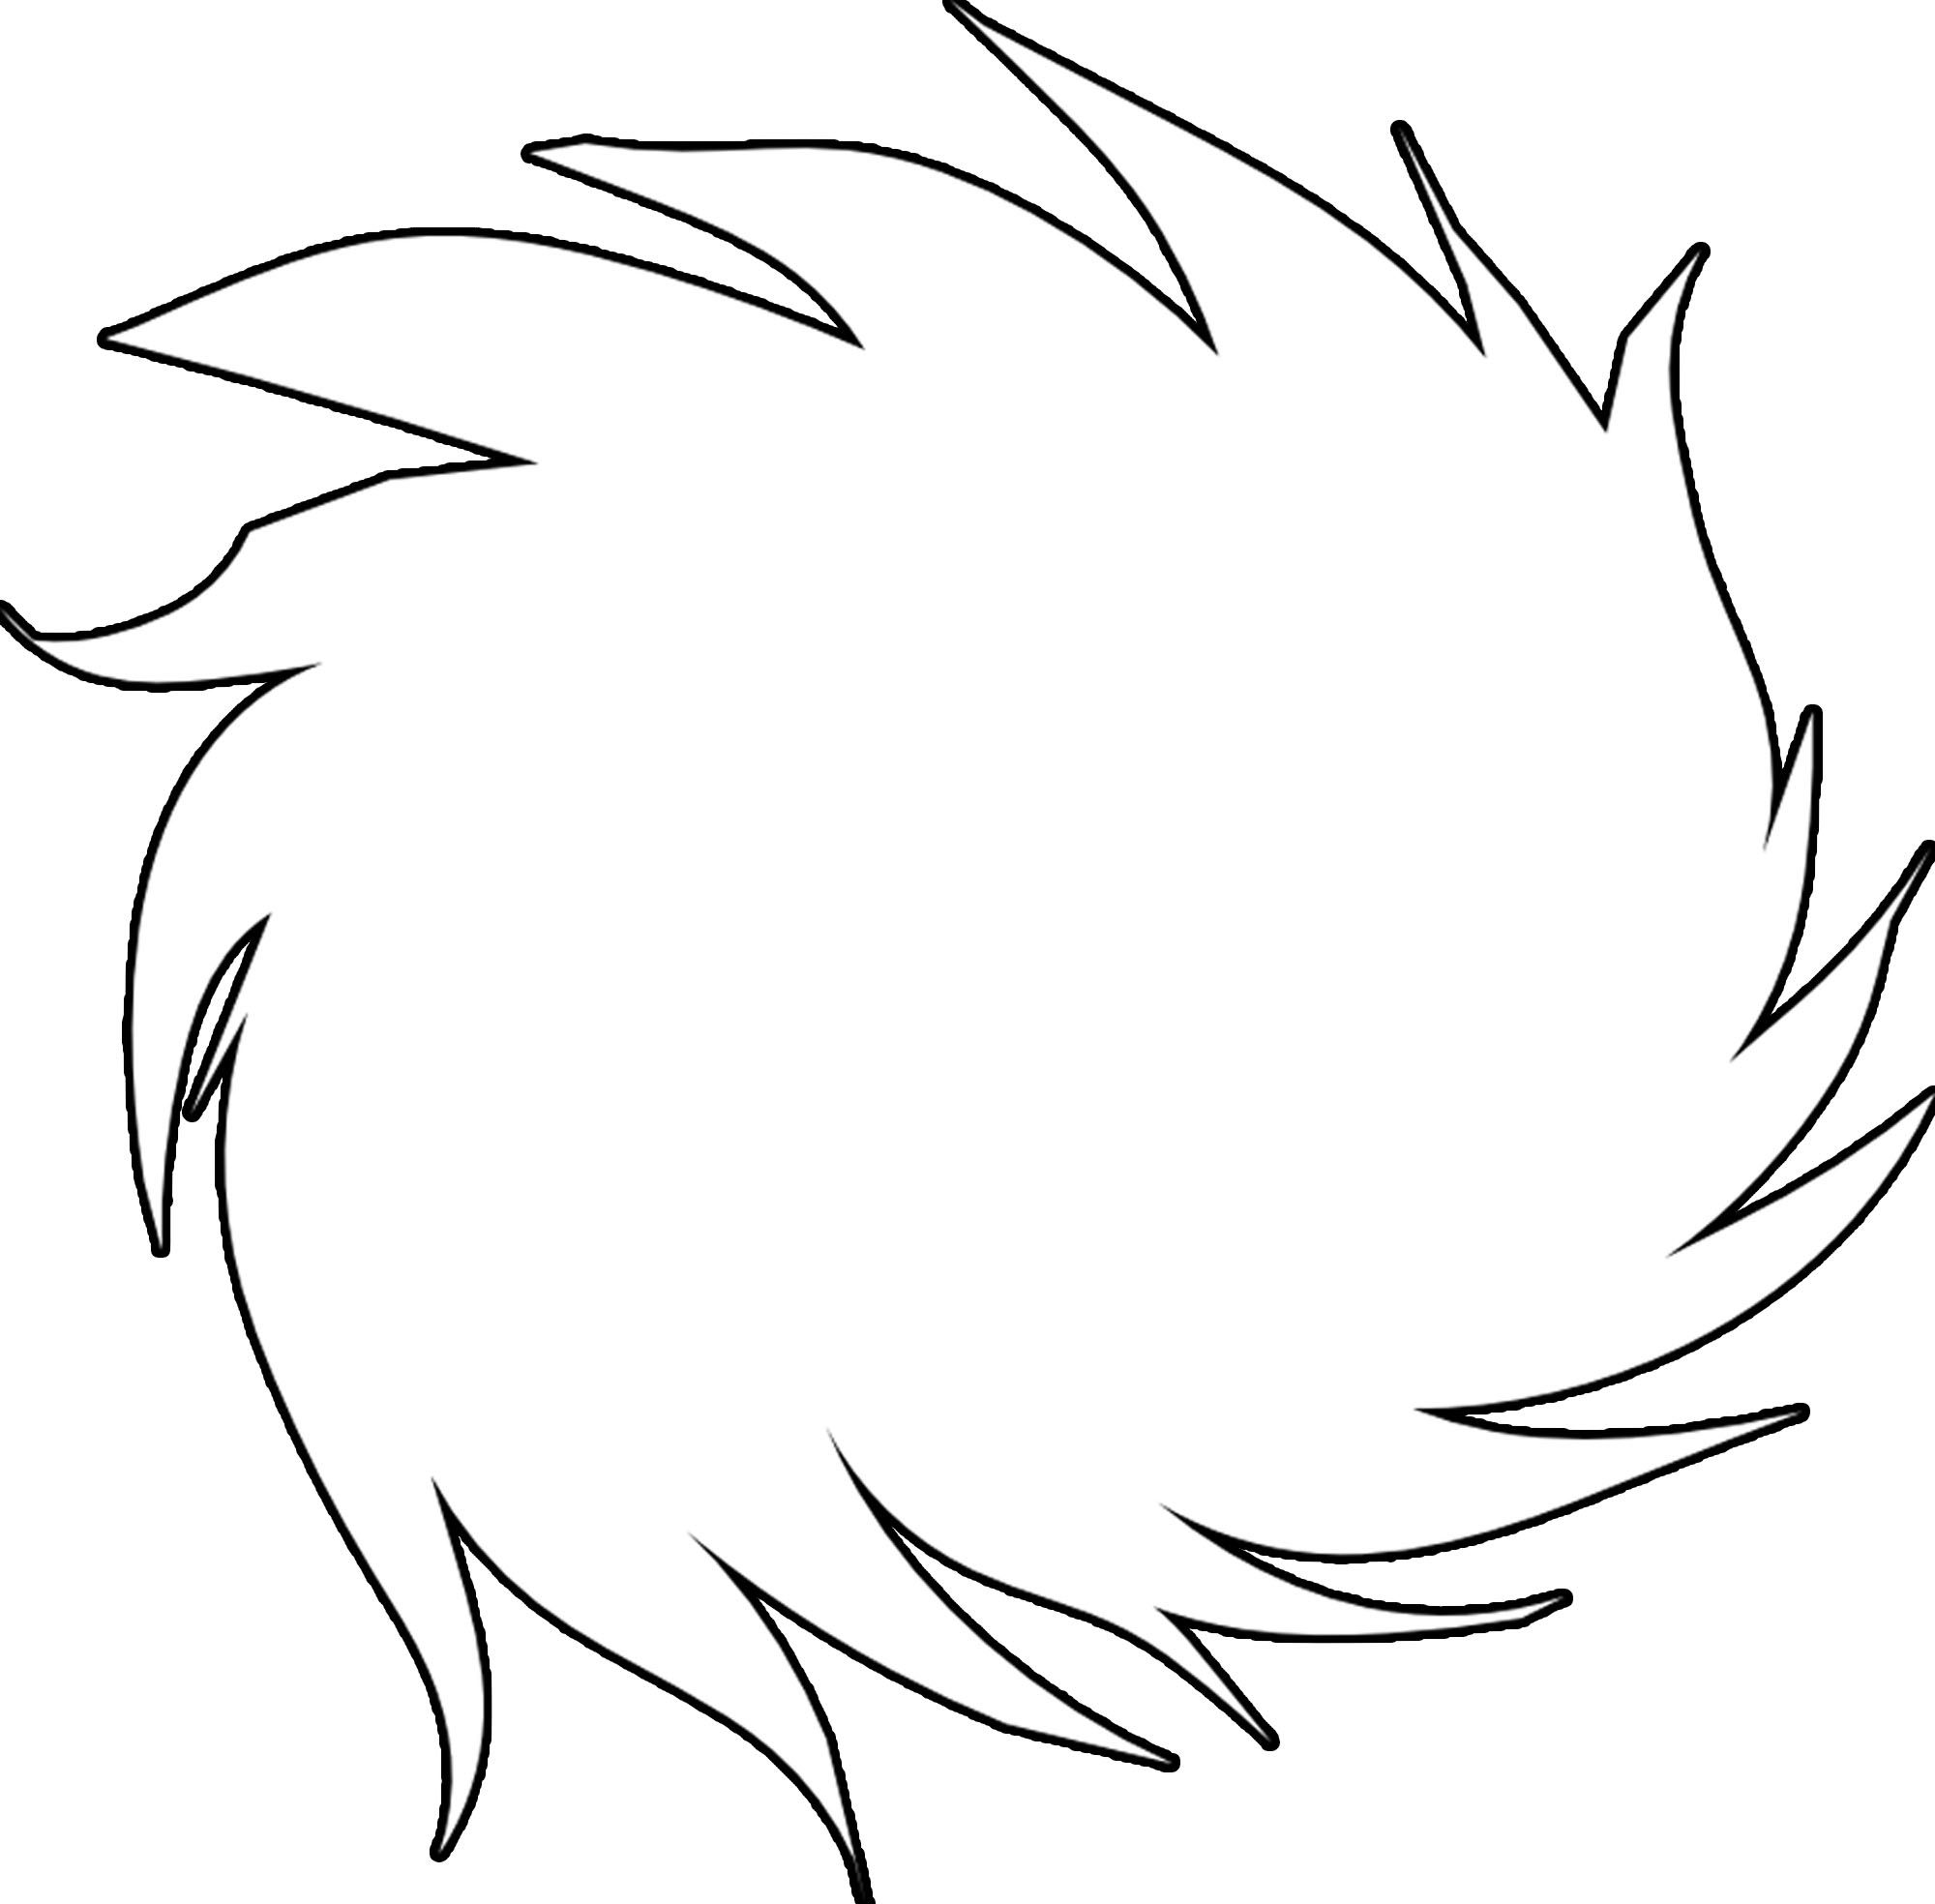 truffula tree coloring page lorax truffula trees outline truffula page tree coloring